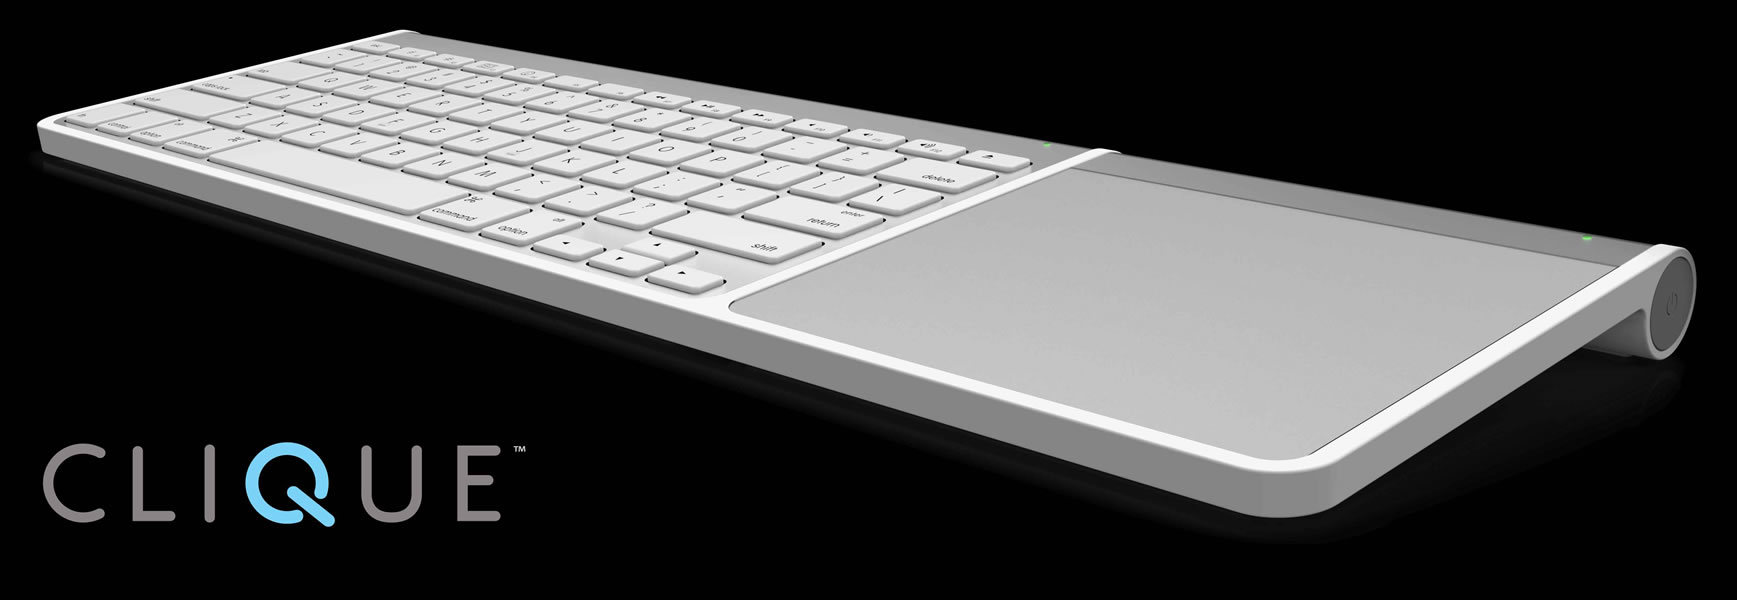 henge docks clique connects apple 39 s wireless keyboard and magic trackpad dock. Black Bedroom Furniture Sets. Home Design Ideas